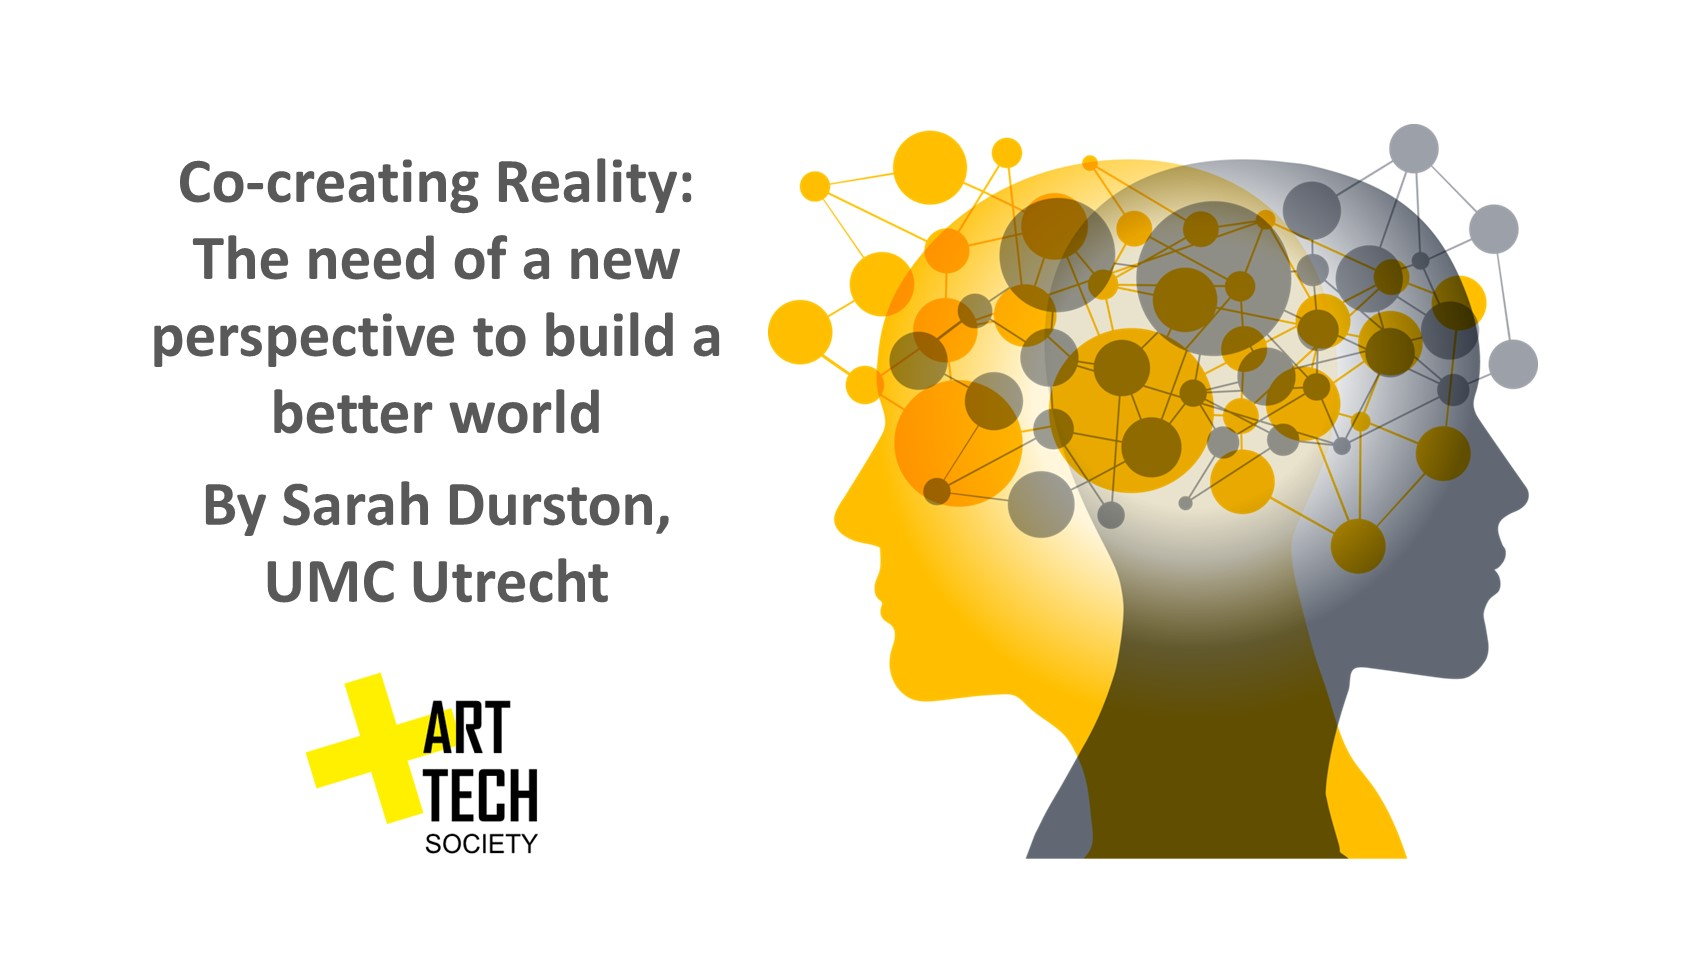 Co-creating Reality: the need of a new perspective to build a better world by Sarah Durston